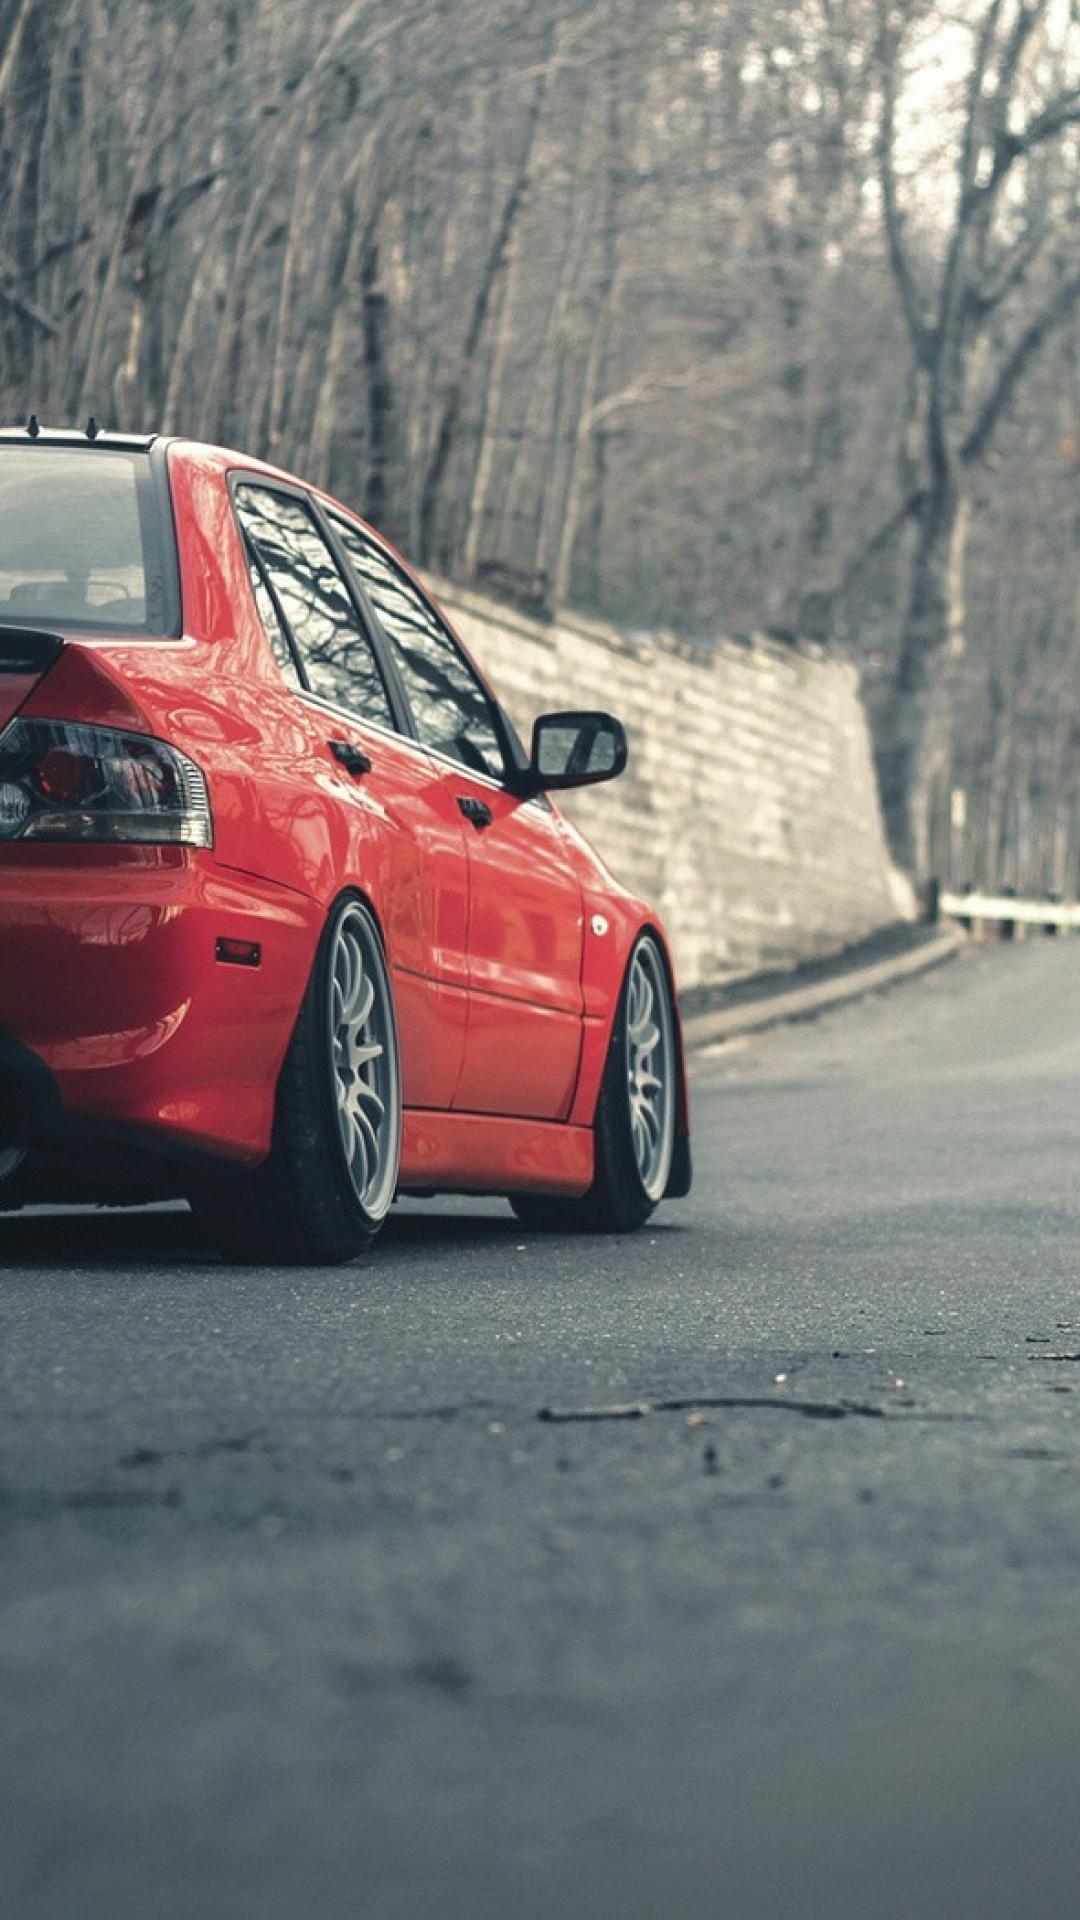 Jdm Wallpapers For Mobile Phones